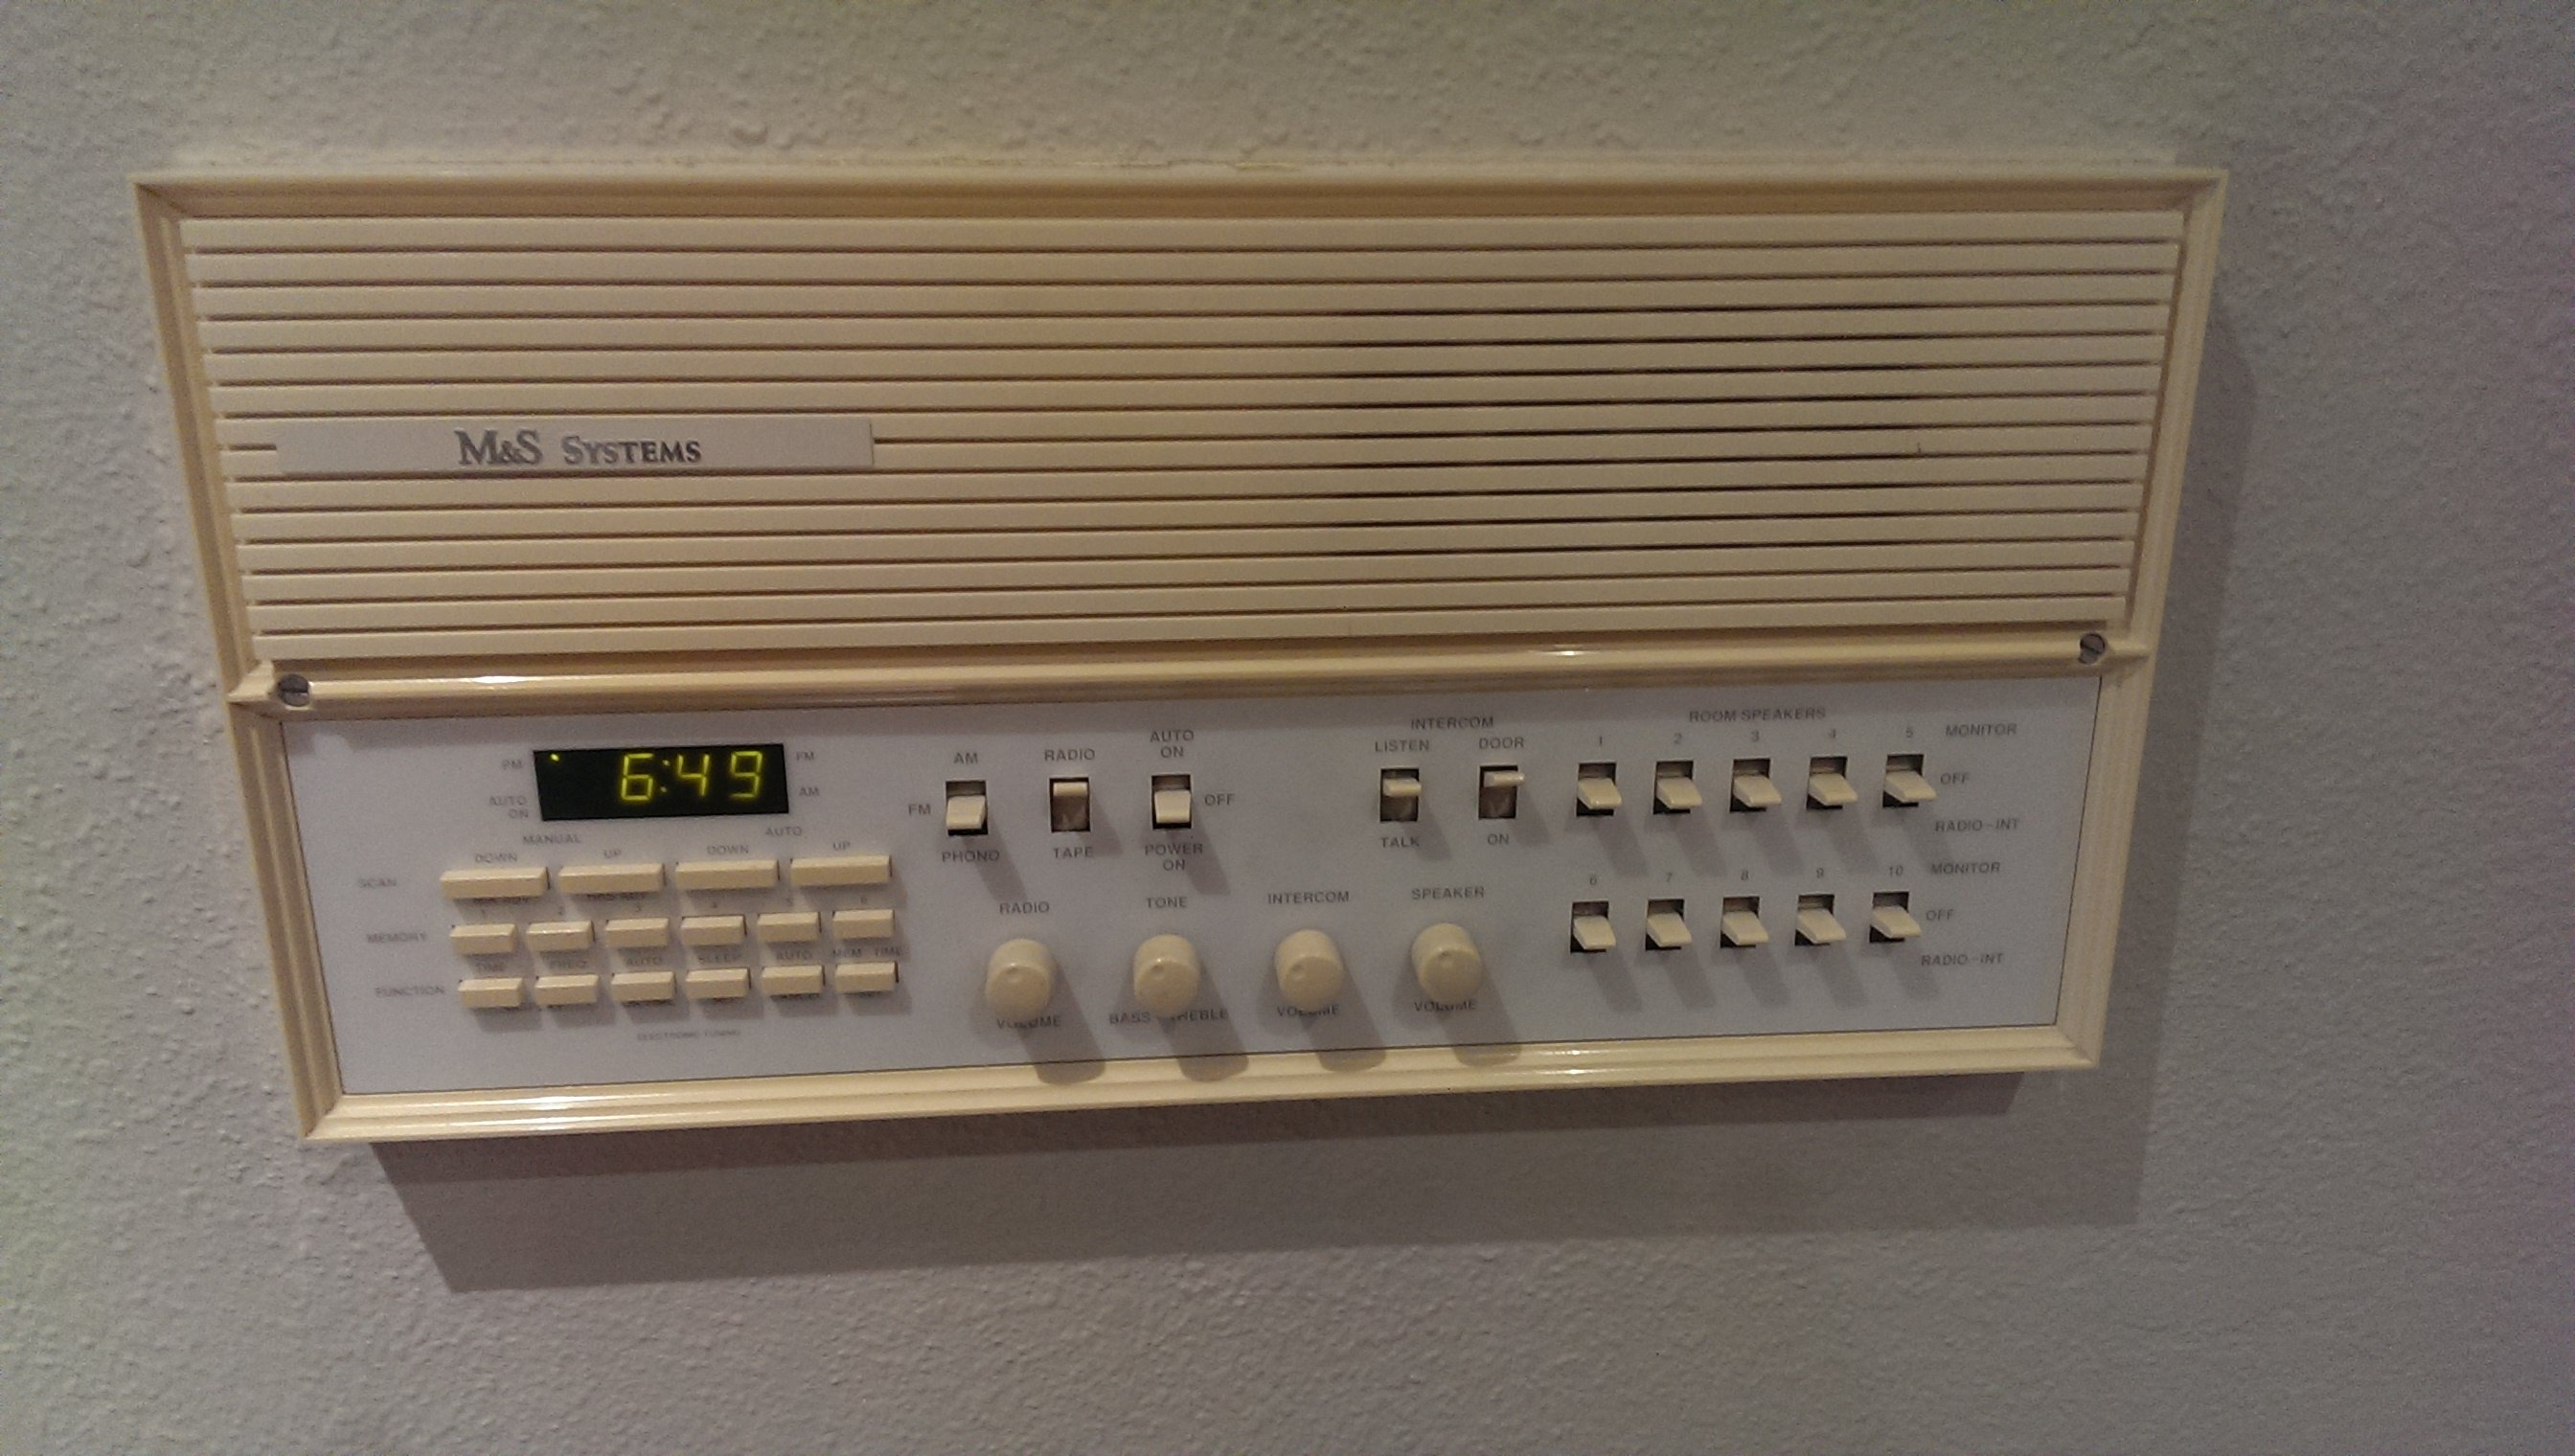 Home Intercom Wiring Diagram M S Systems Mc350a Diagrams Ll Ms System Upgrade Replacement Avs Forum At